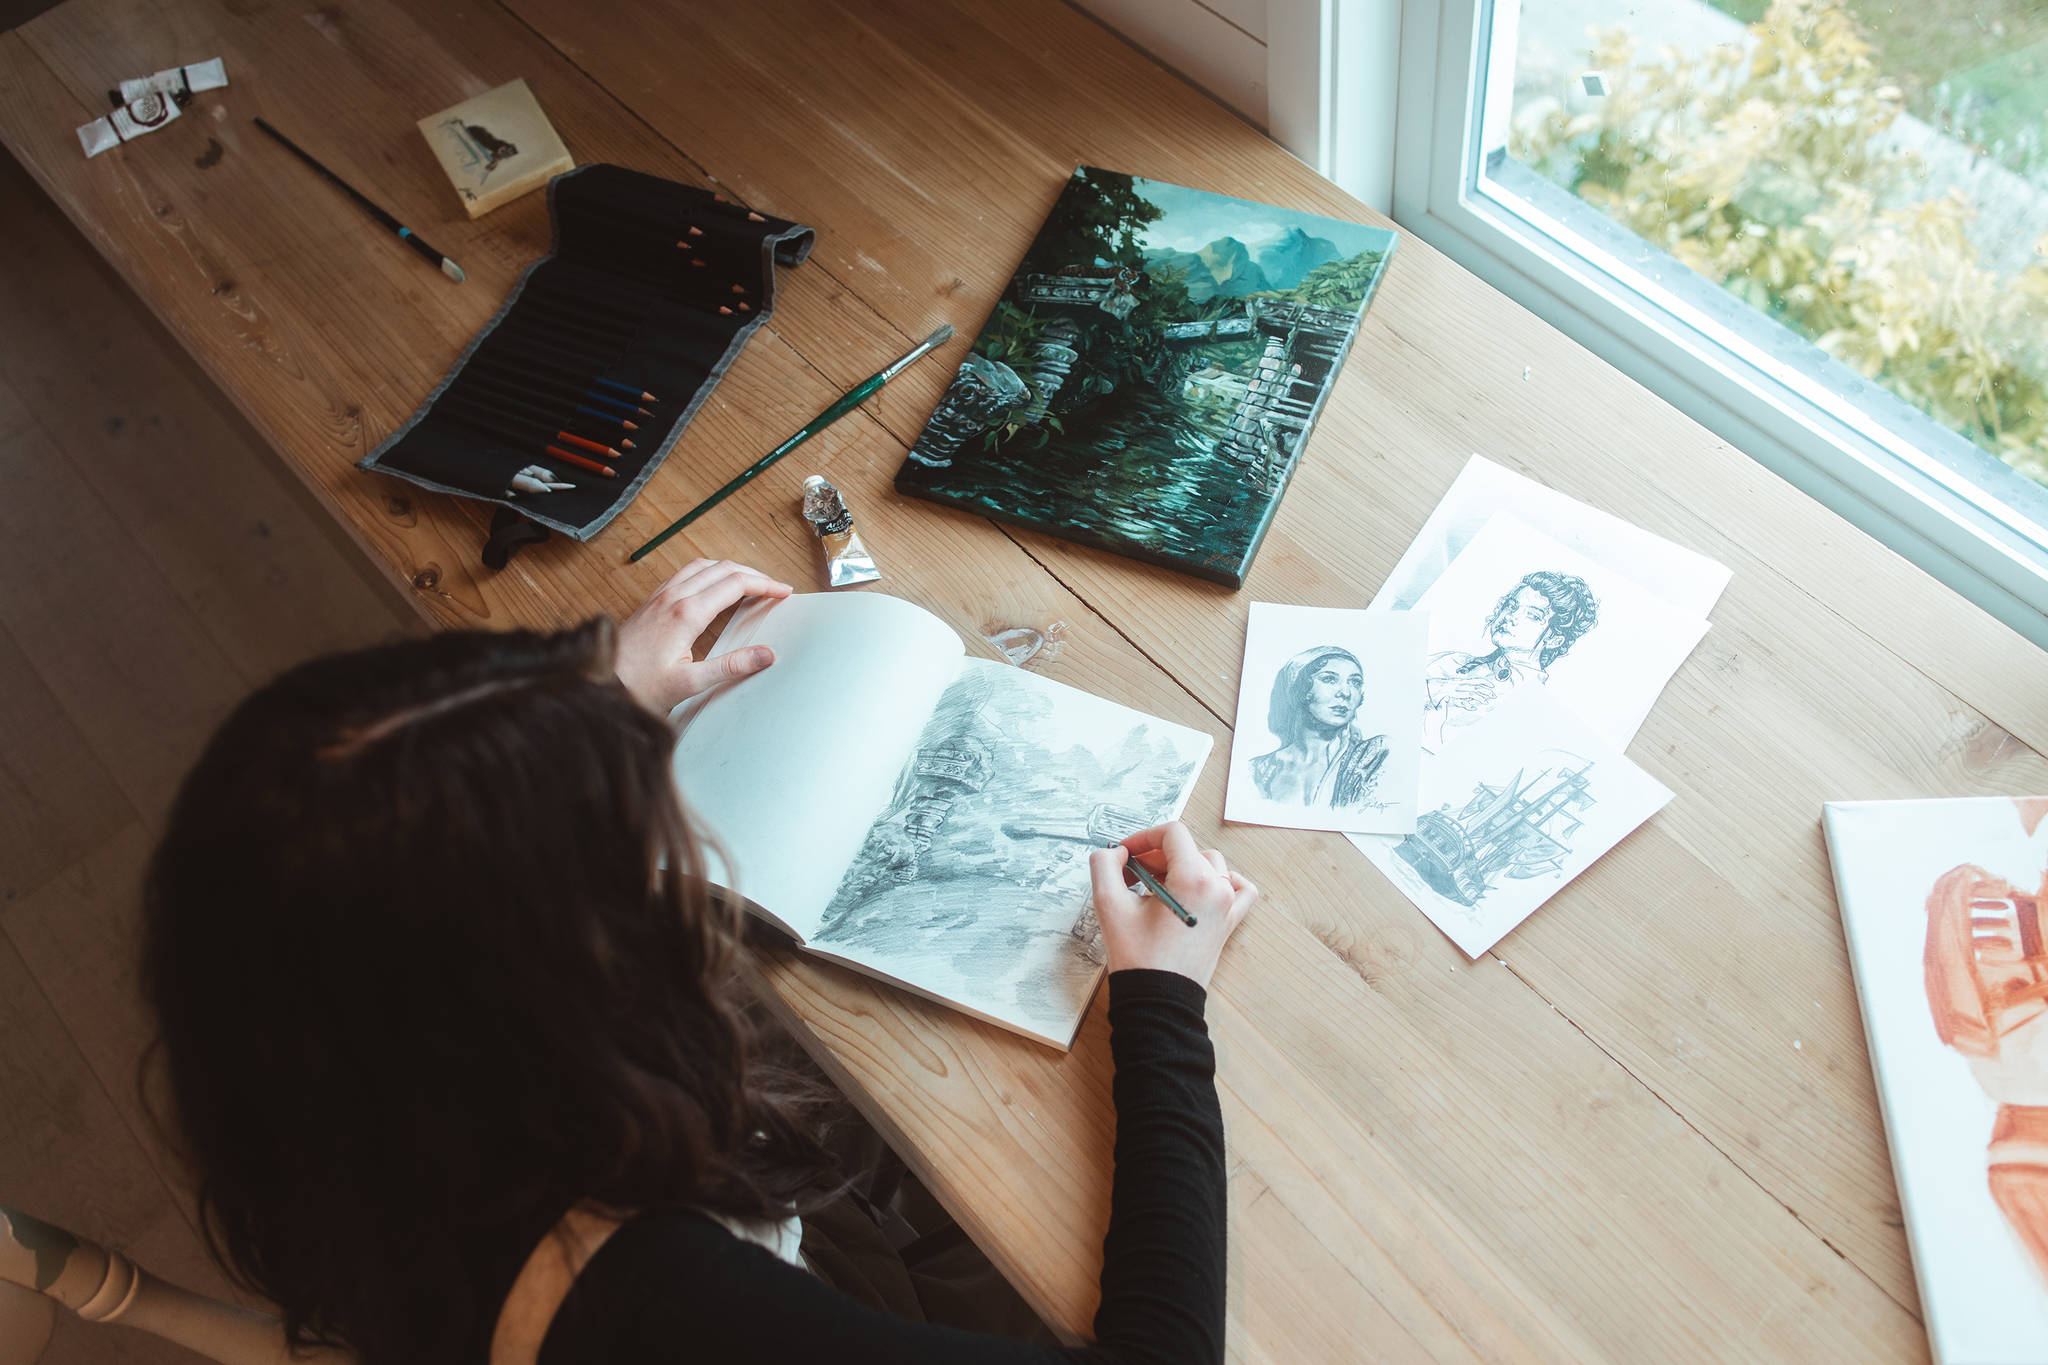 Inside the studio of Abbotsford artist Julia Martens, who creates art in many different mediums.